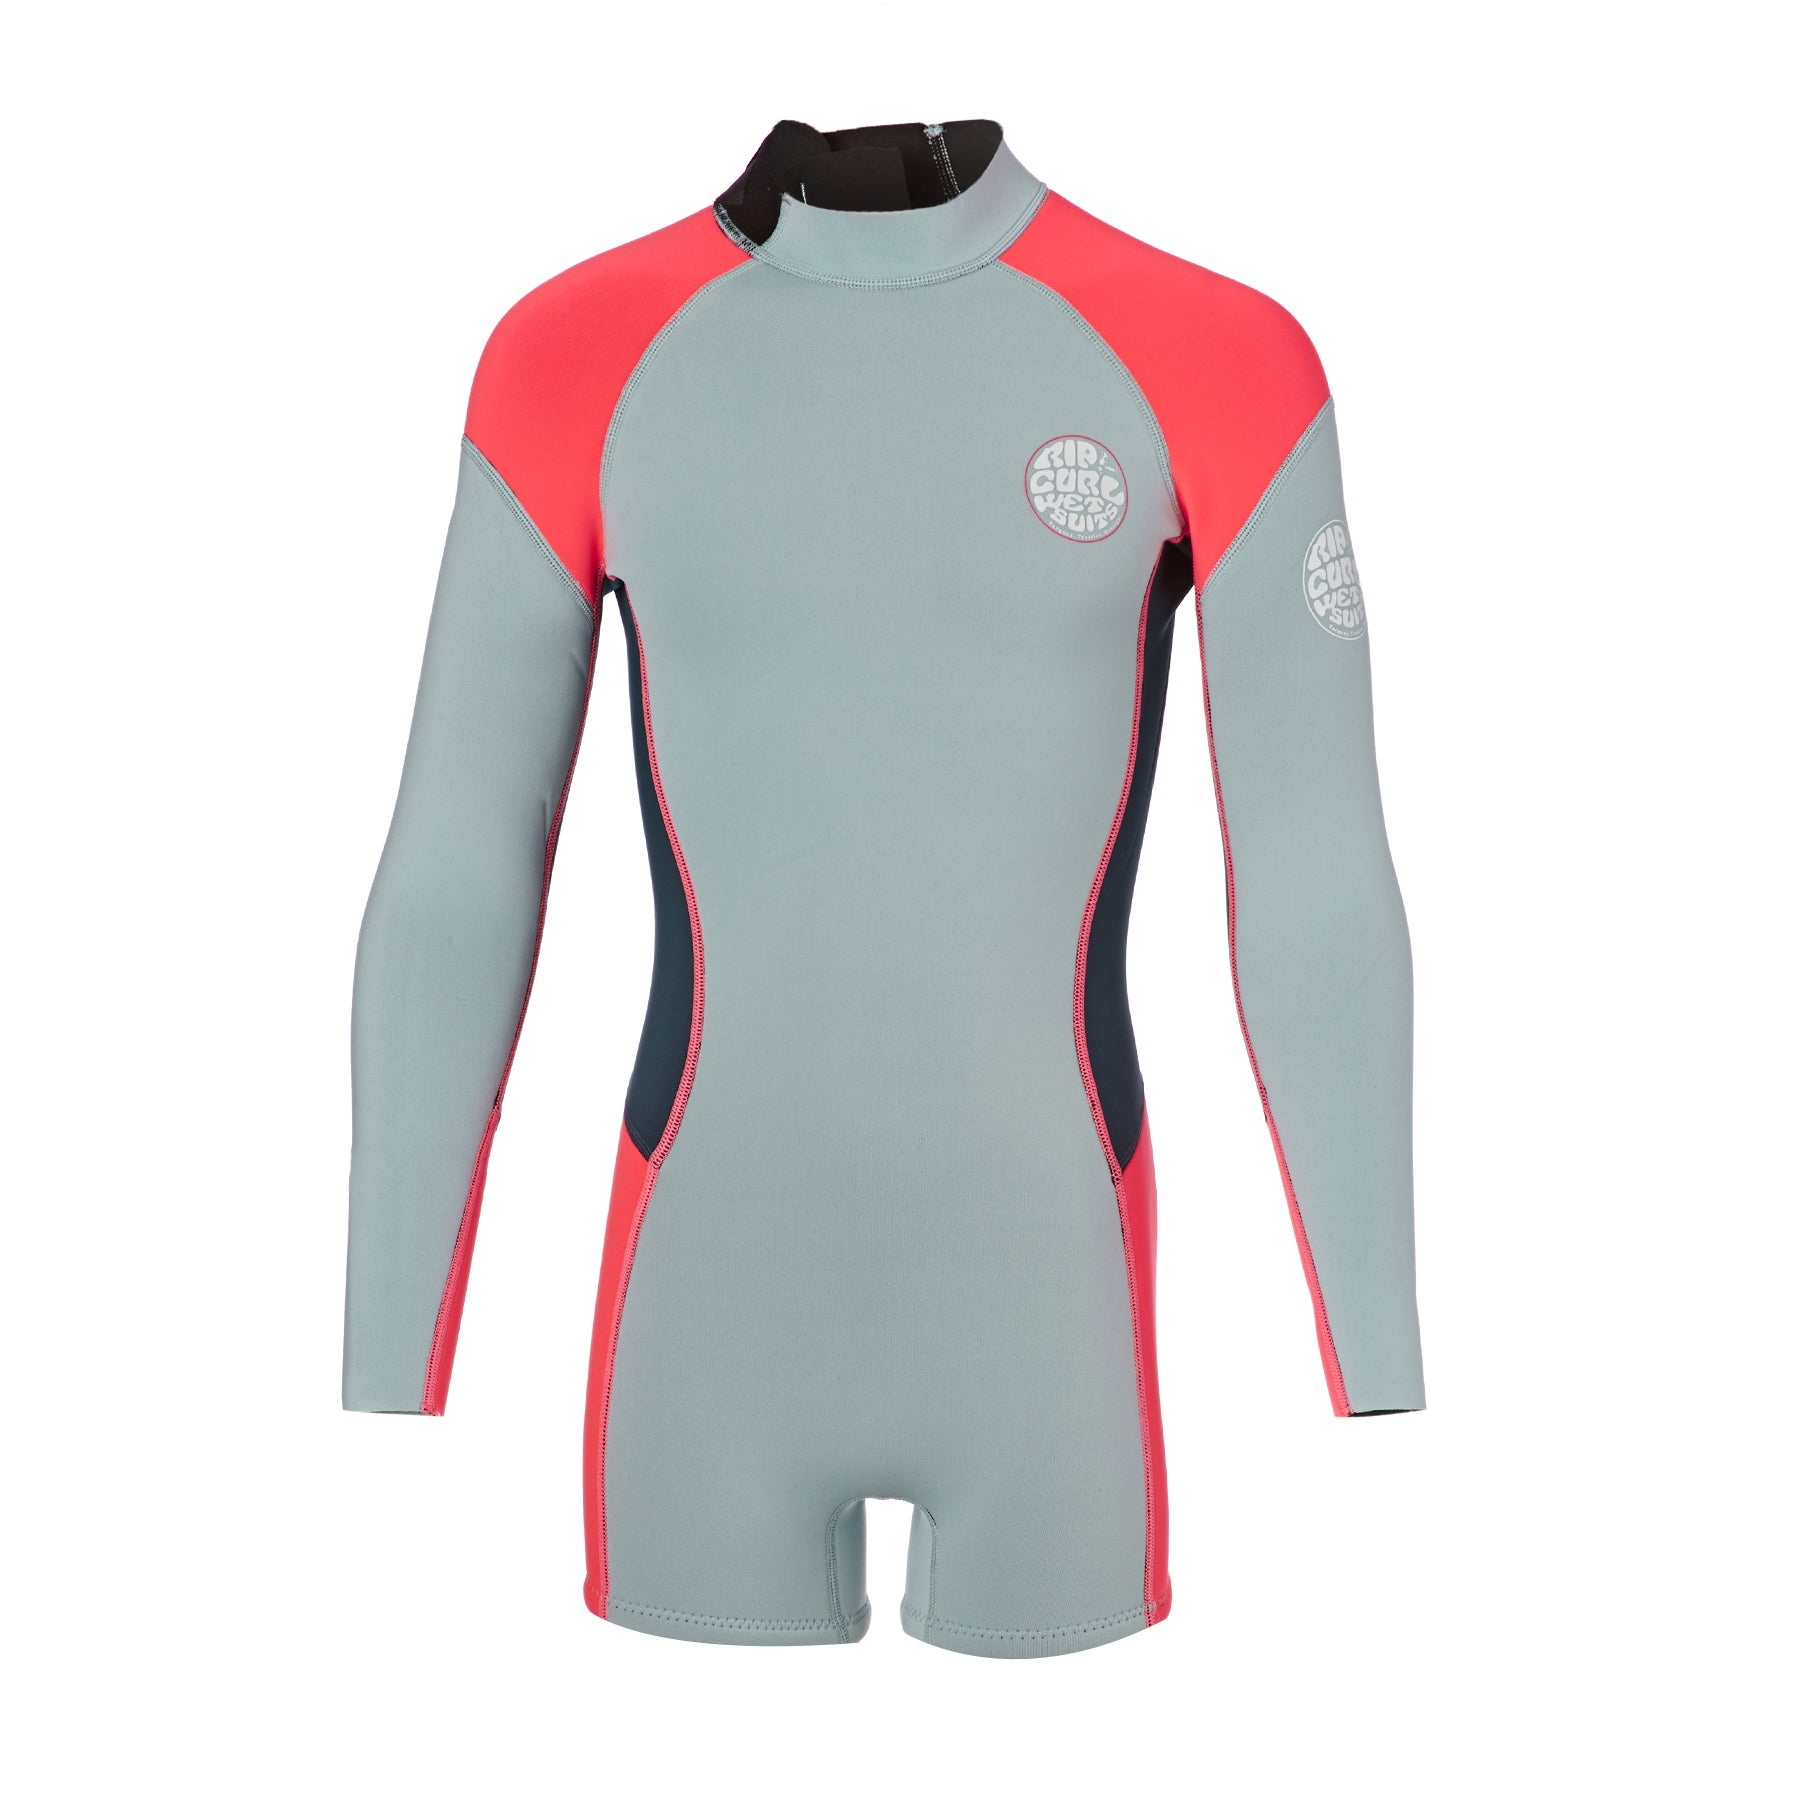 Rip Curl Junior G Bomb 1mm Front Zip Long Sleeve Shorty Girls Wetsuit - Light Blue